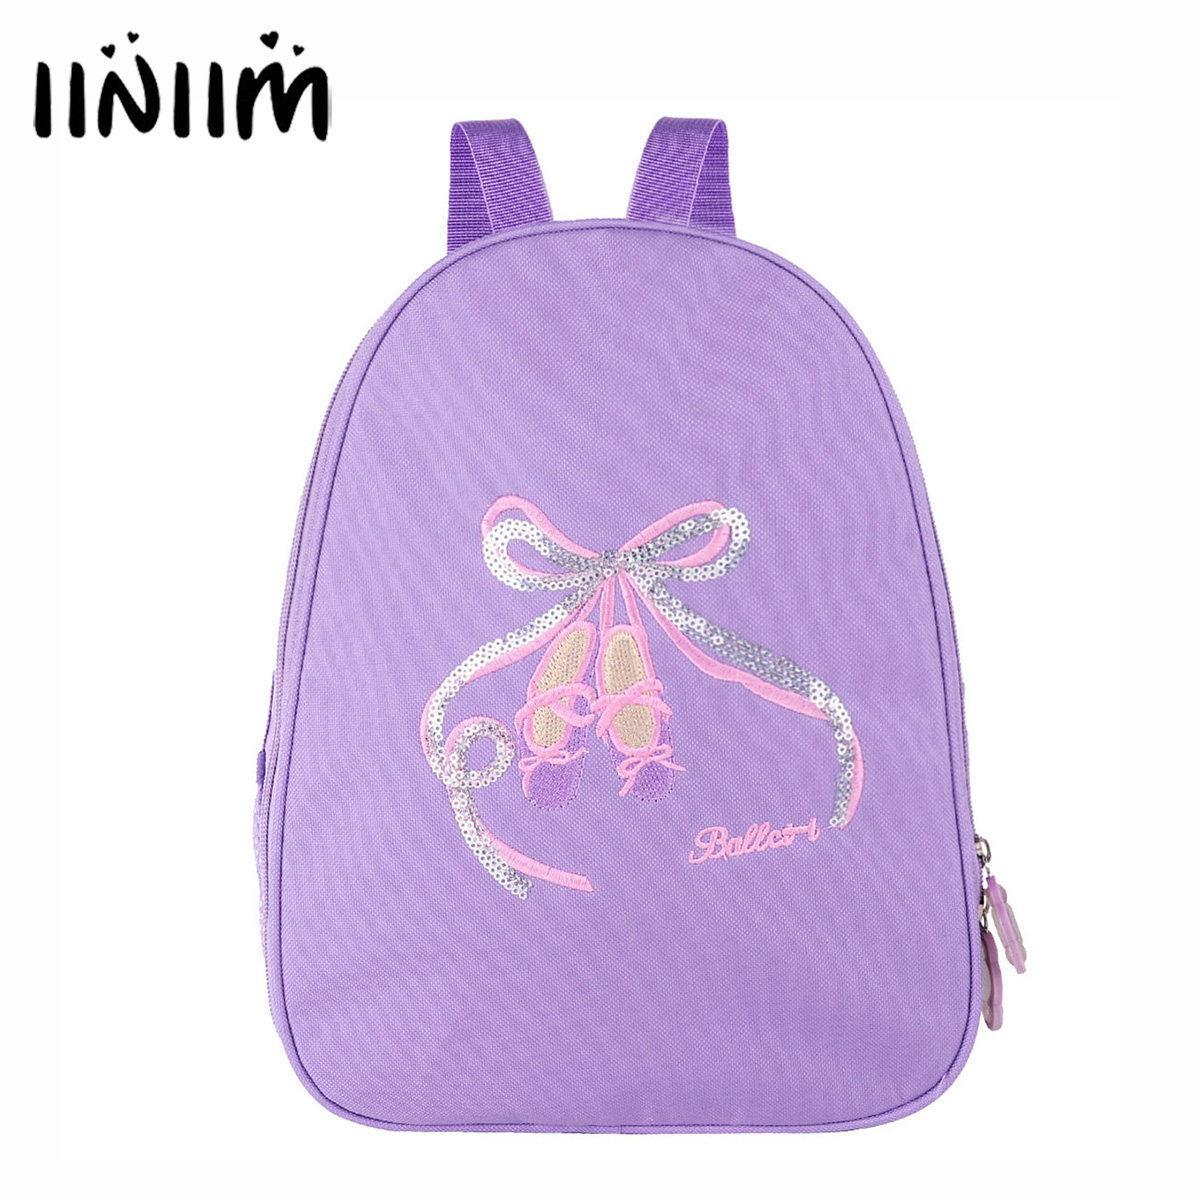 Girls Ballet Bag Letter Toe Shoes Embroidered Shoulder Bag Leotards Tutu Backpack for Kids Dancing Put in Ballet Cance Clothing